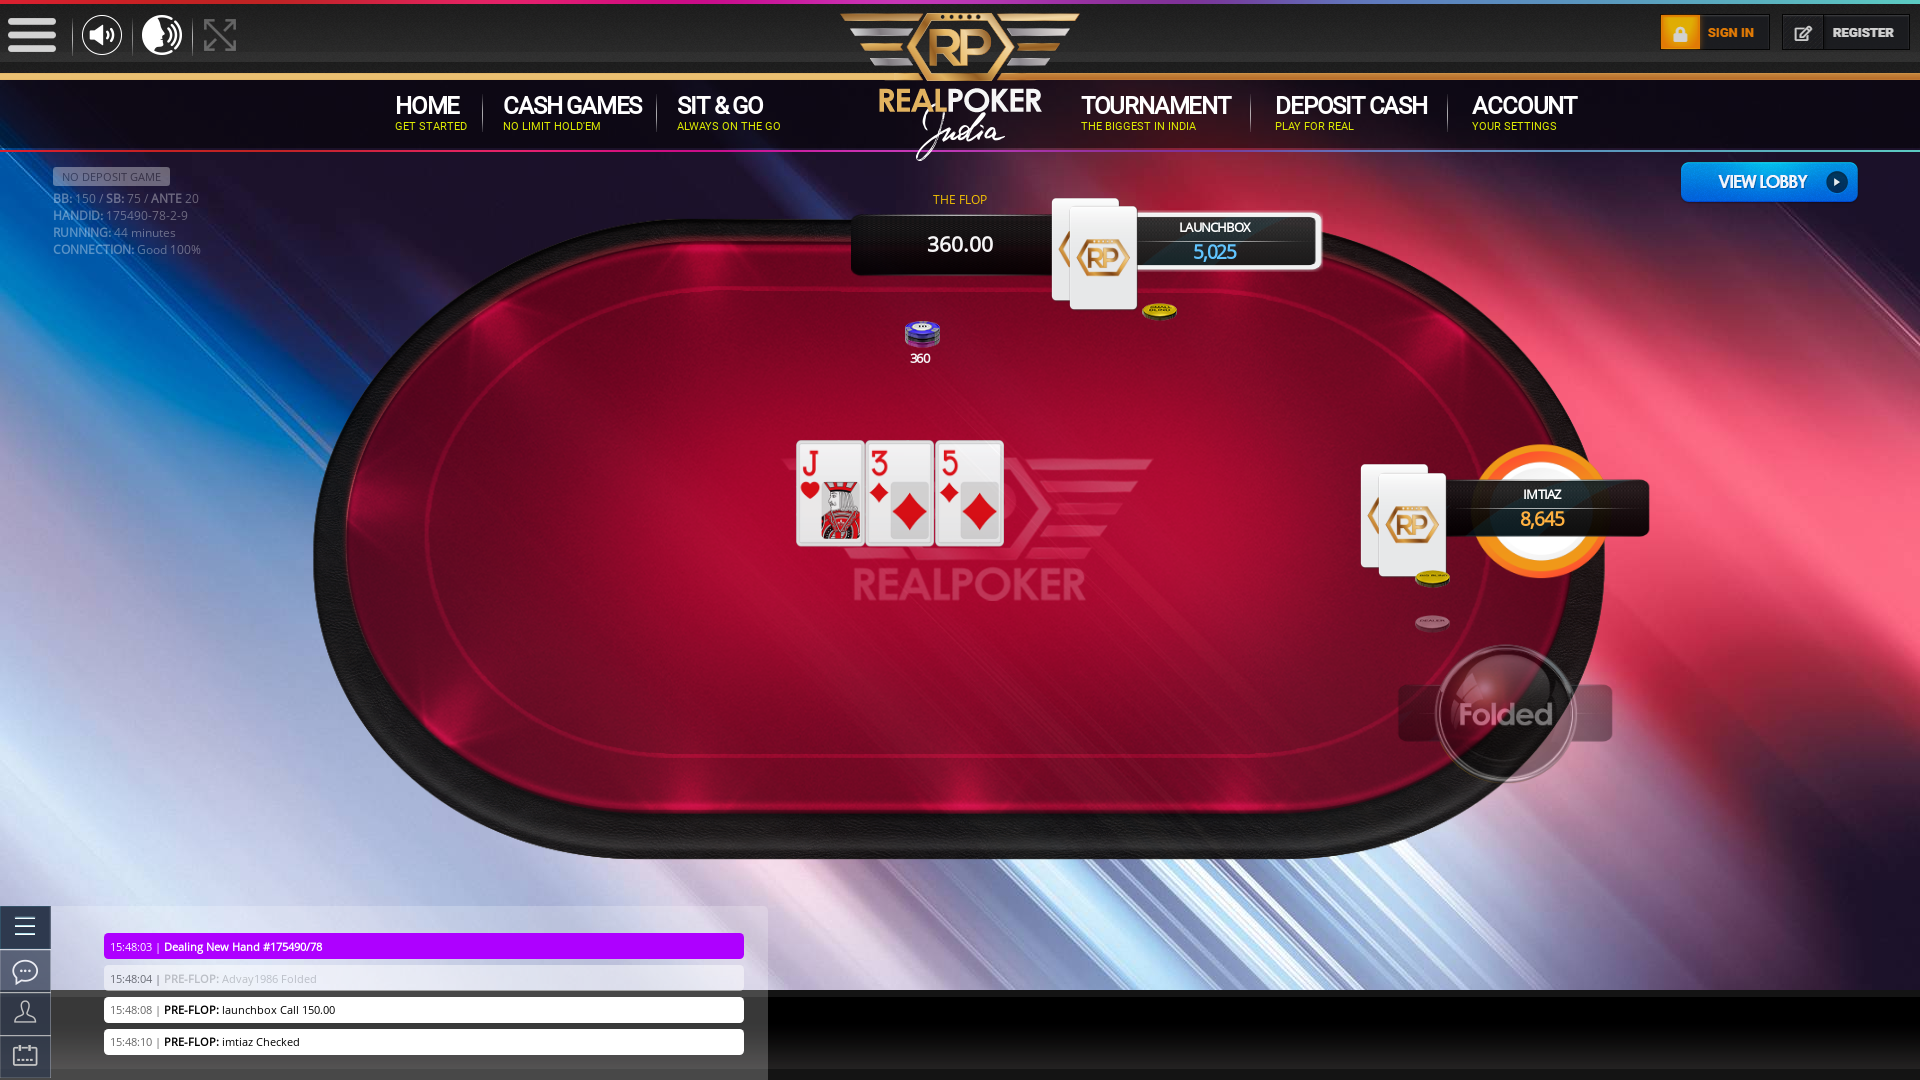 Mormugao Goa online poker game on a 10 player table in the 44th minute of the game